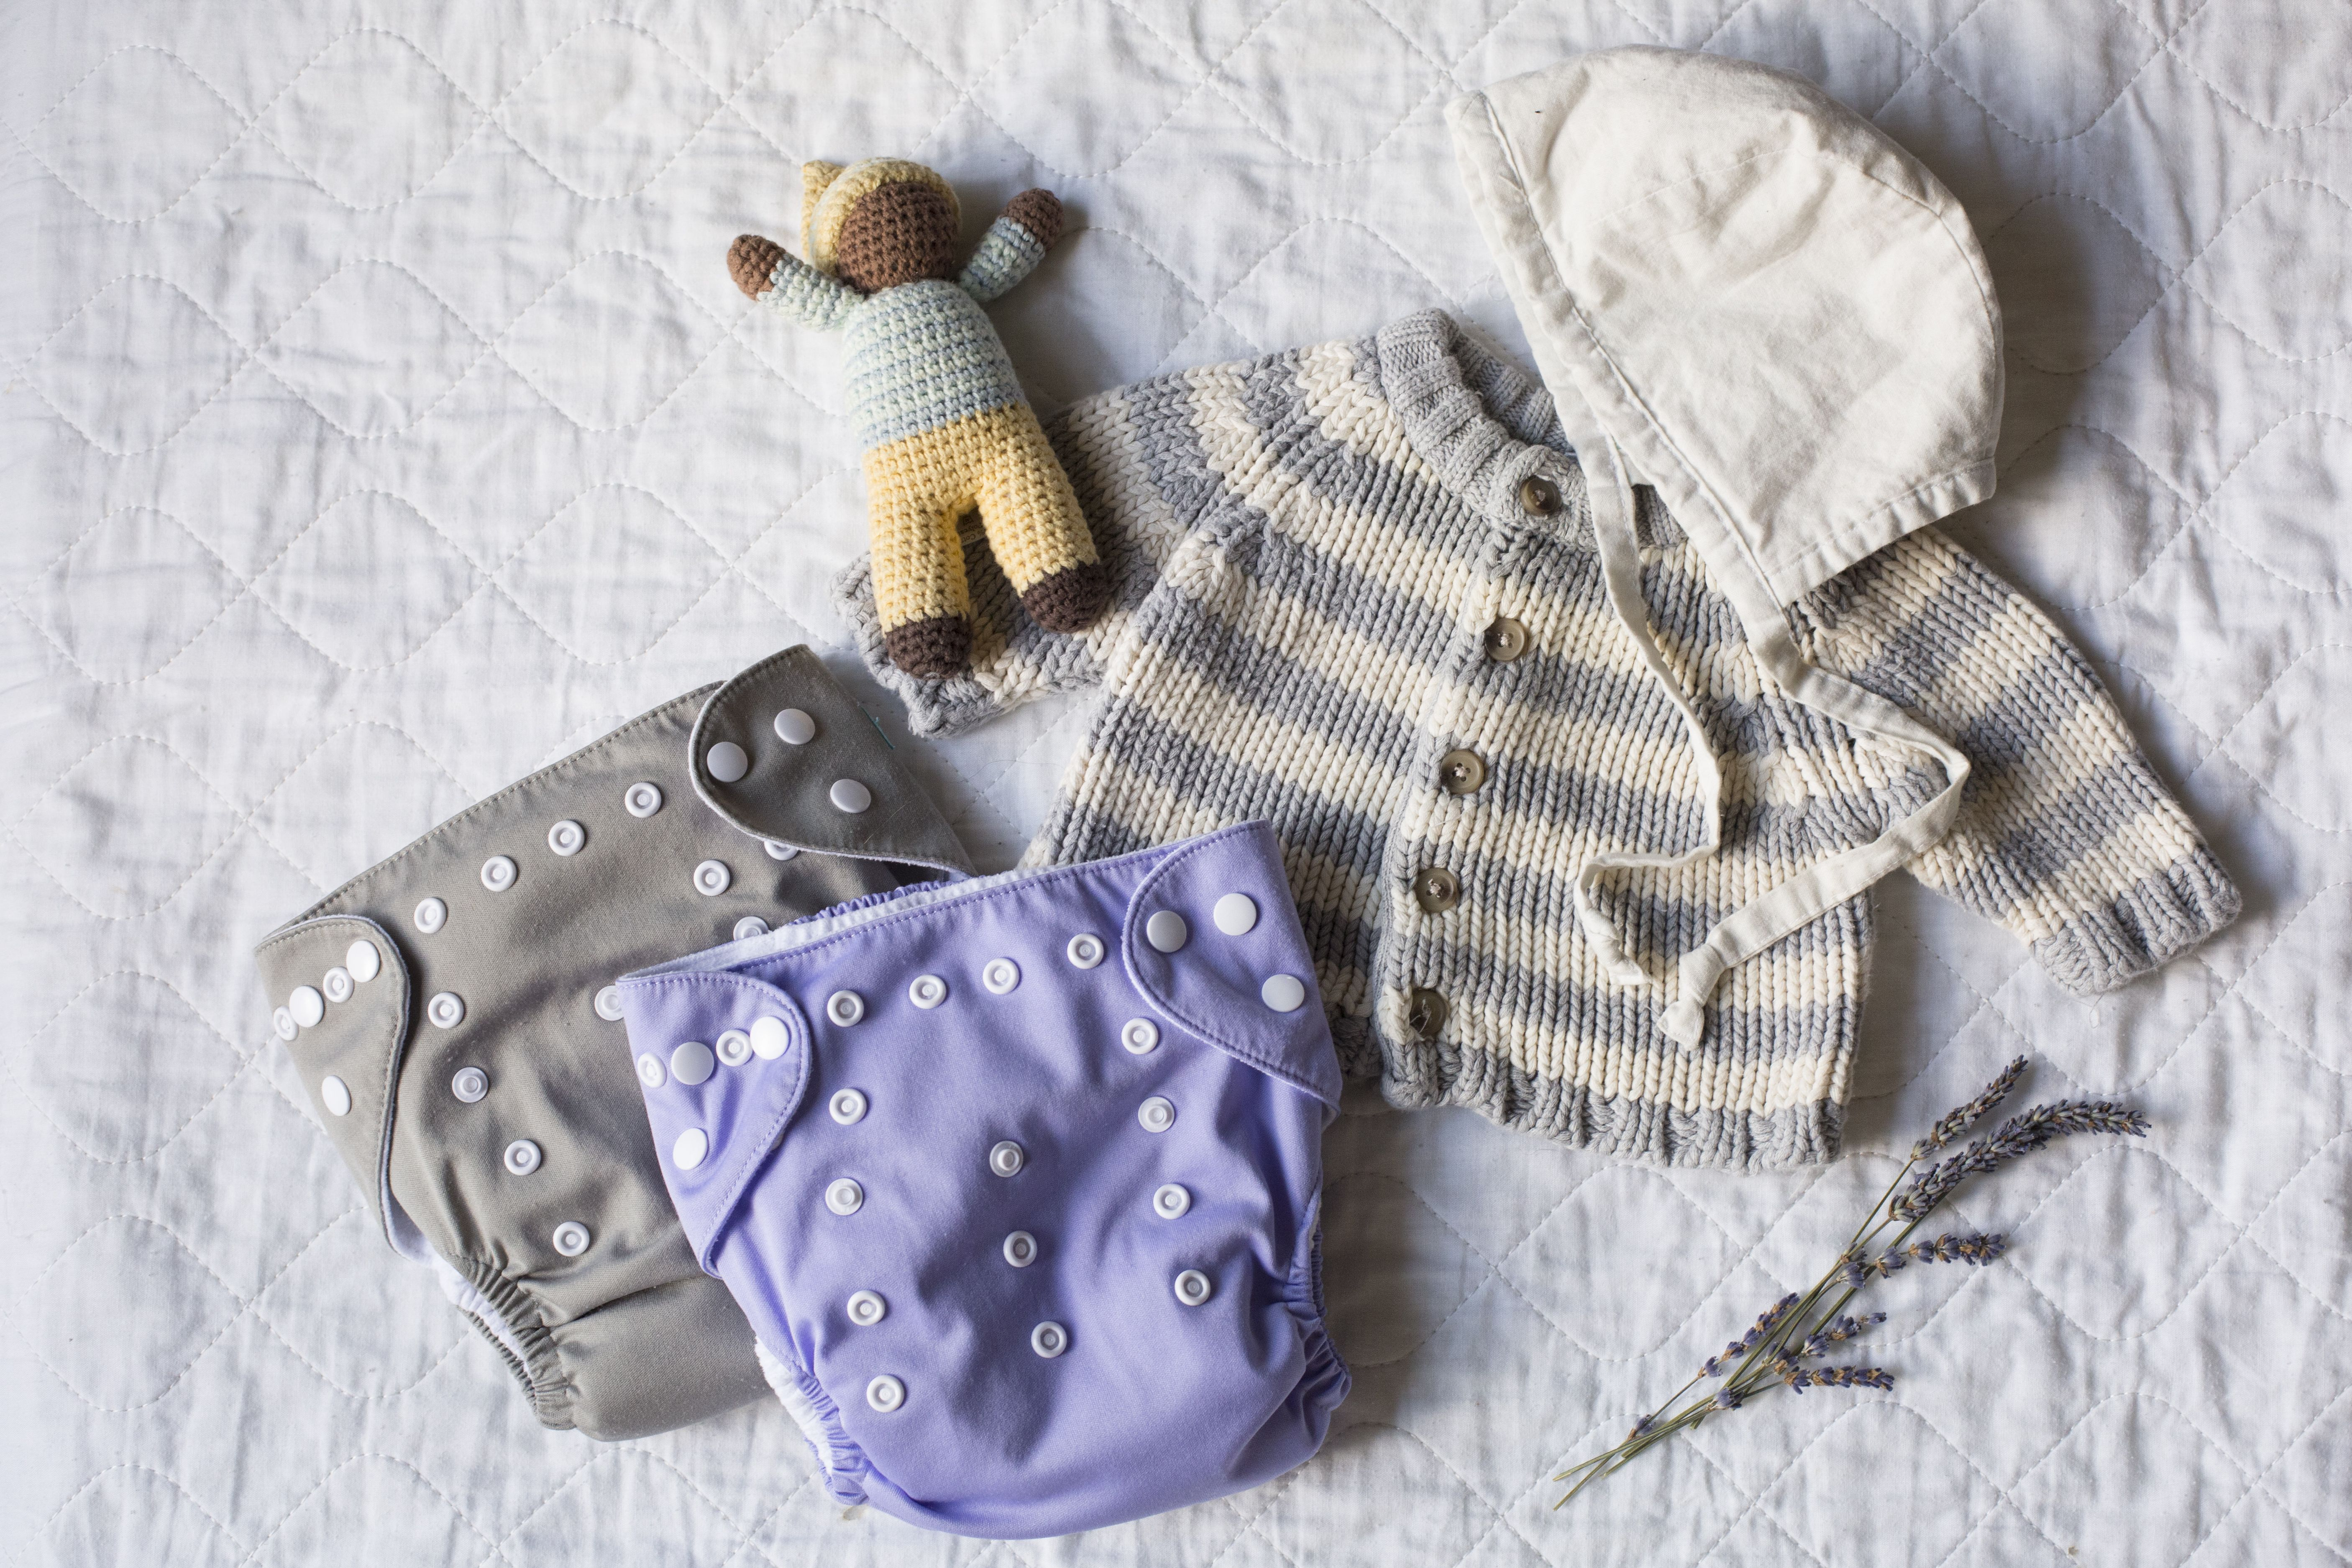 Baby care cloth diapering and safe skin care with